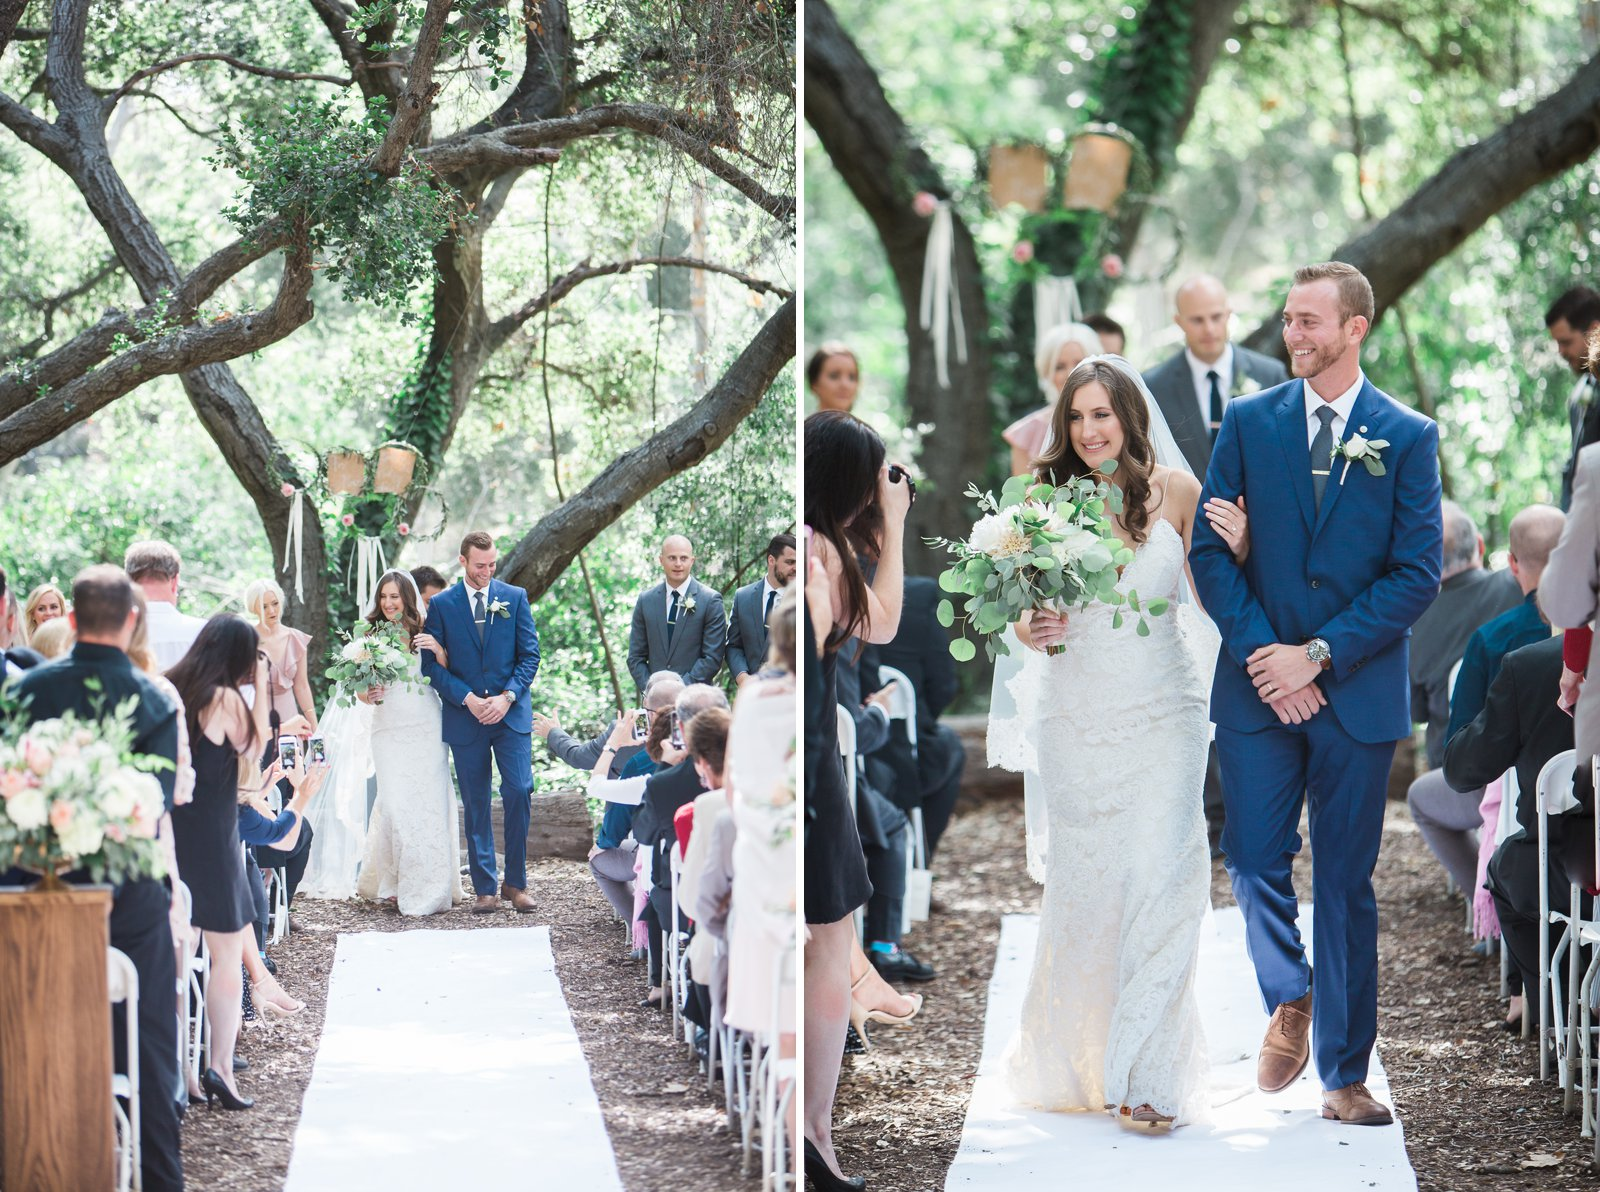 Bride and Groom recessional after this Santa Barbara museum of natural history wedding ceremony